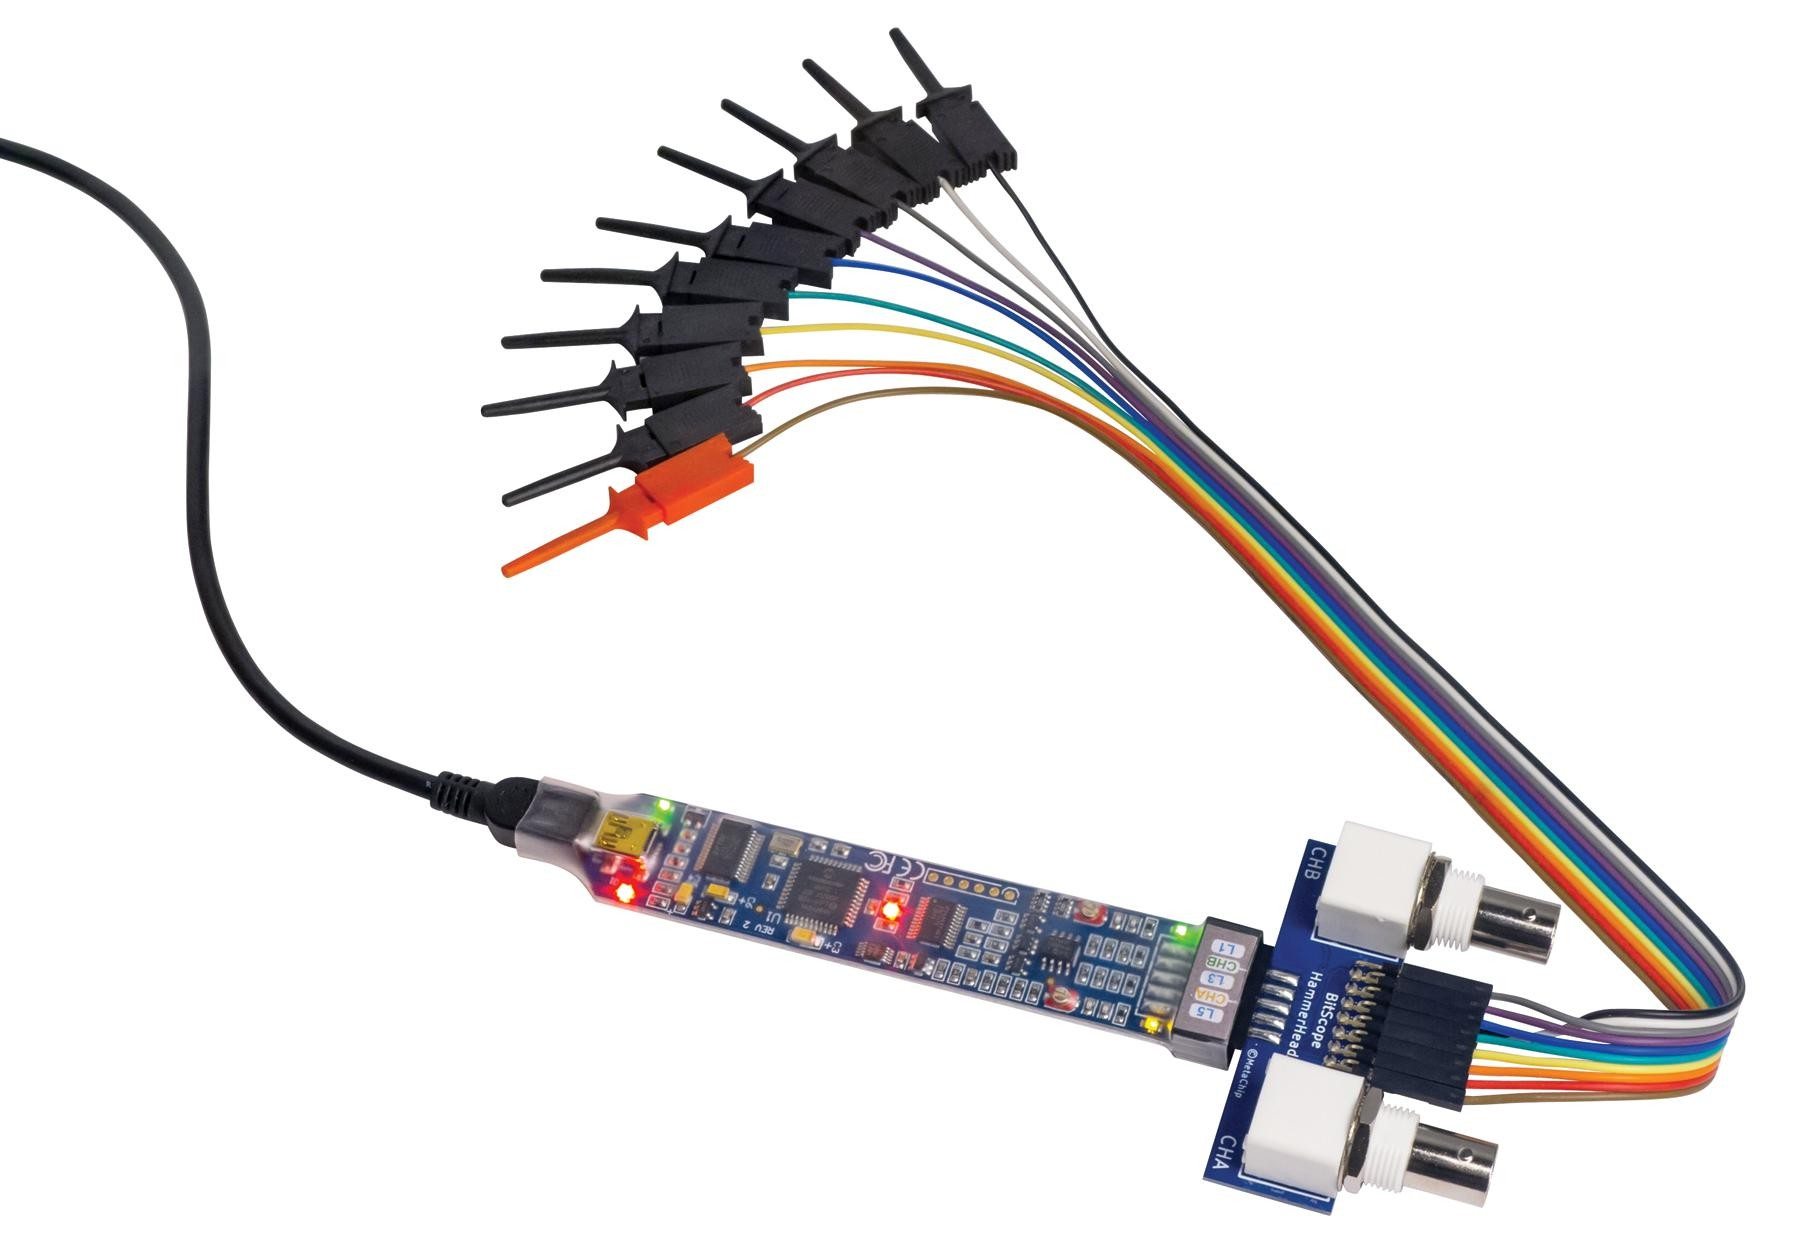 Picaxe Serial Cable Wiring In Addition Pc Plc Programming Bitscope Micro Oscilloscope Analyzer Generator Data Recorder Bnc Port Adapter 2 6 Channel 20mhz Bs05p 2455593 Rlx Components Sro Electronic